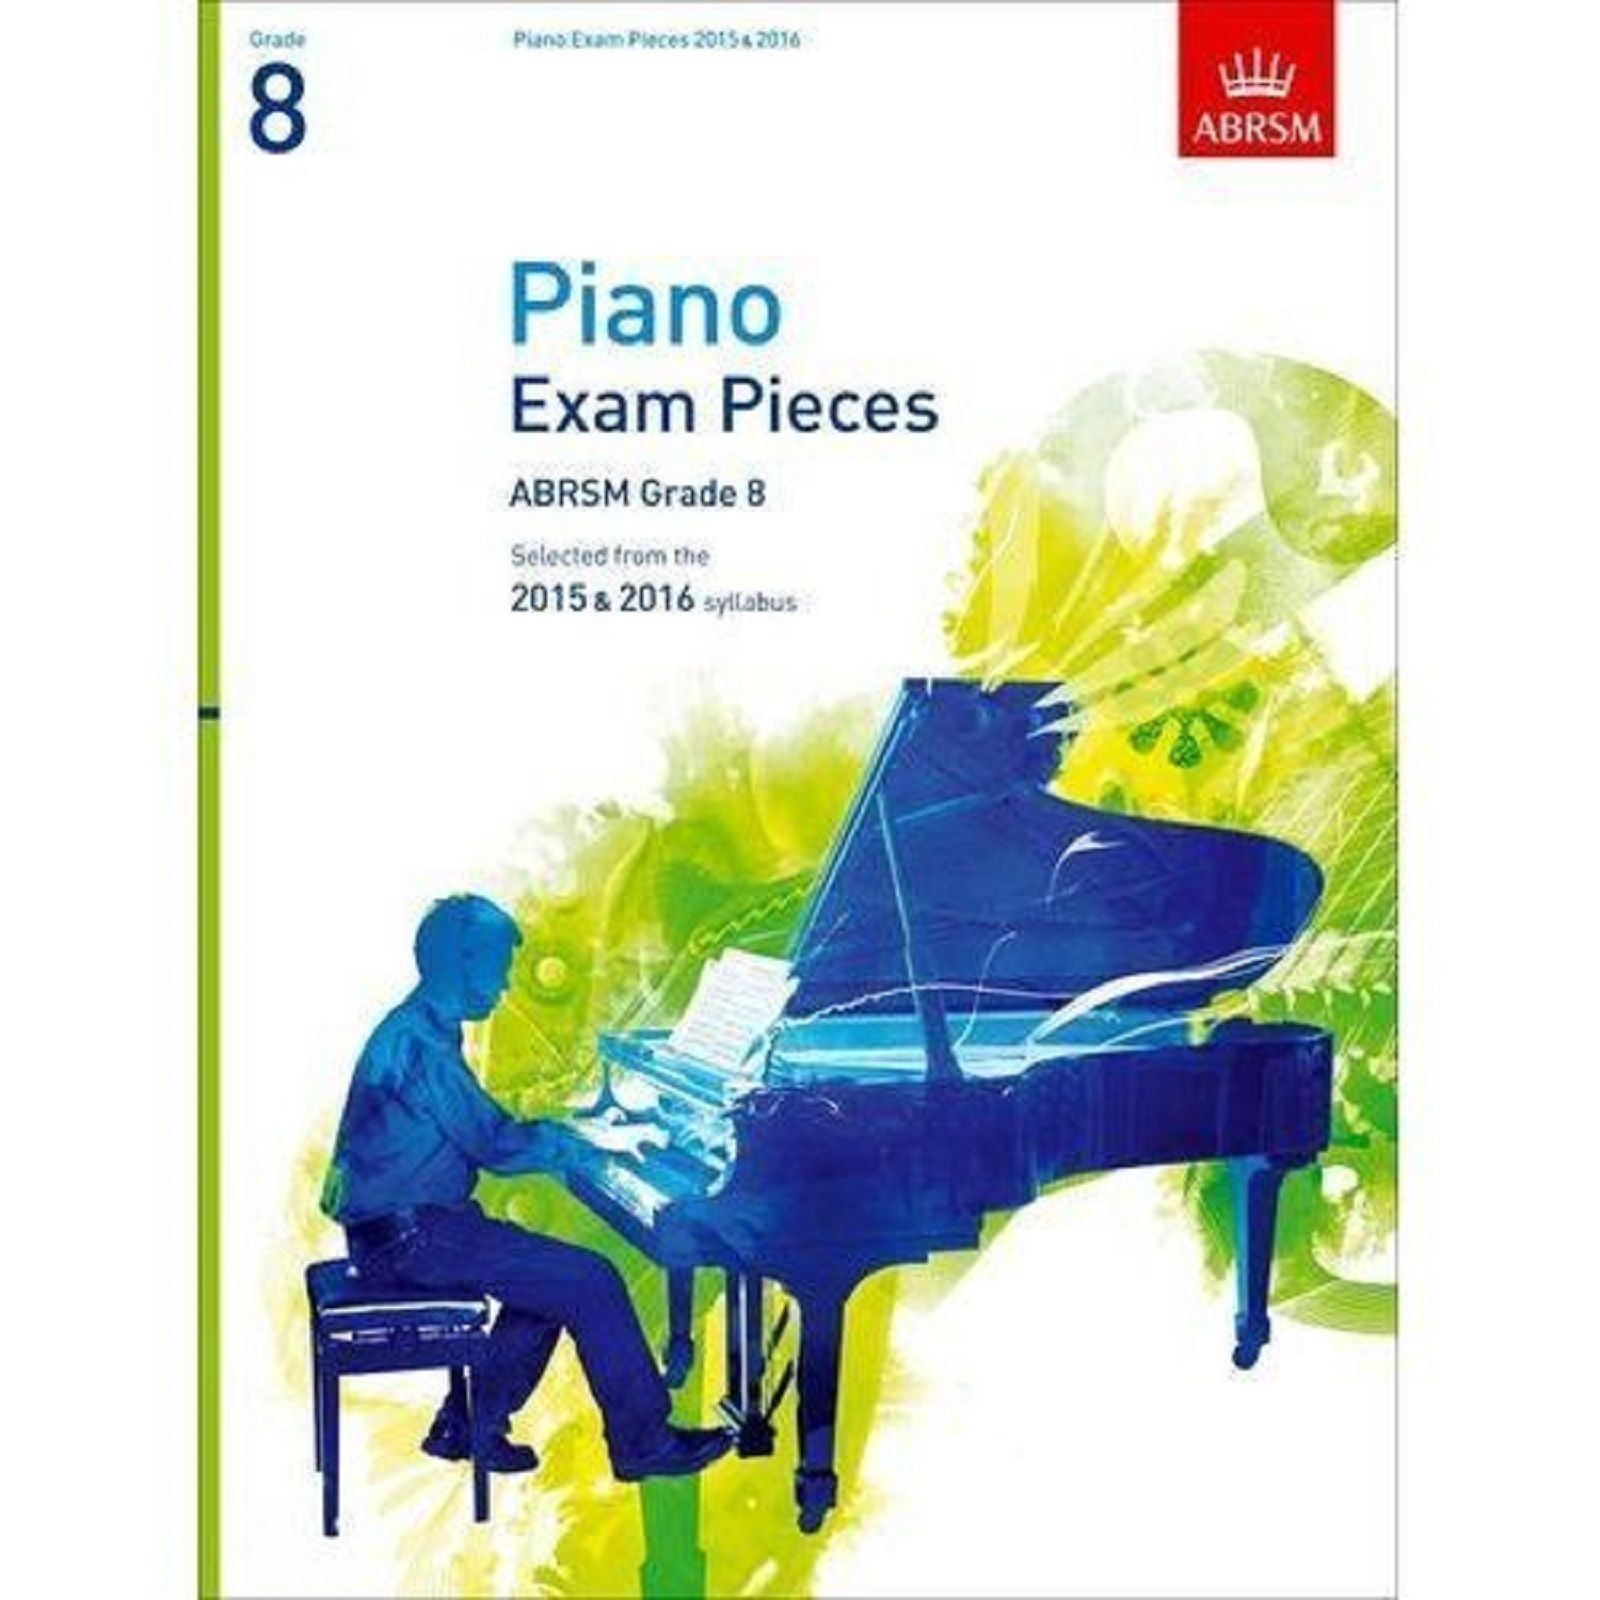 Piano Exam Pieces ABRSM Grade 8 2015 & 2016 Syllabus Book S124